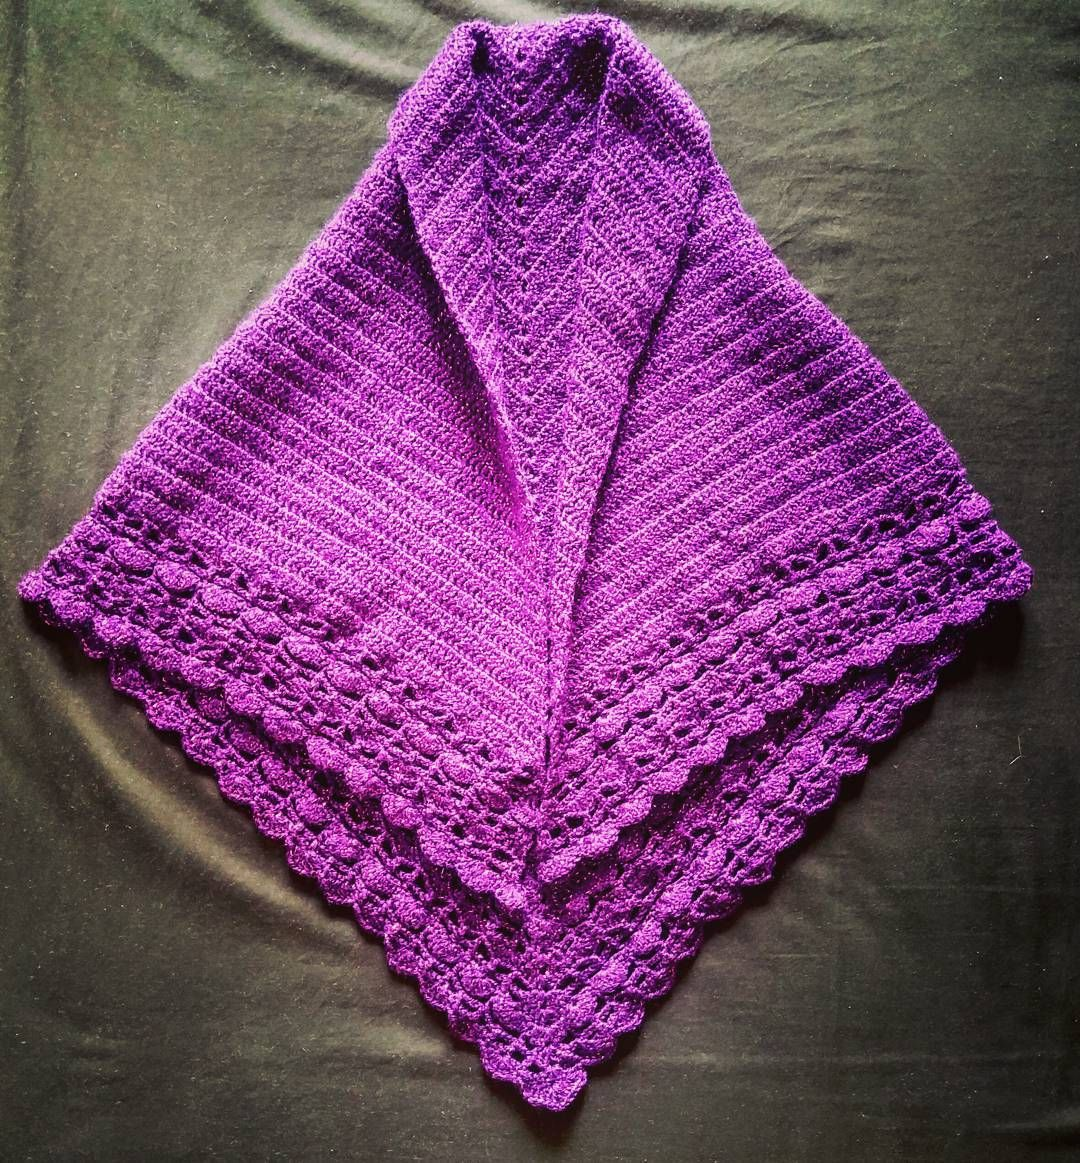 Lace Shell Edged Shawl Crochet Project Complete Relentlessly